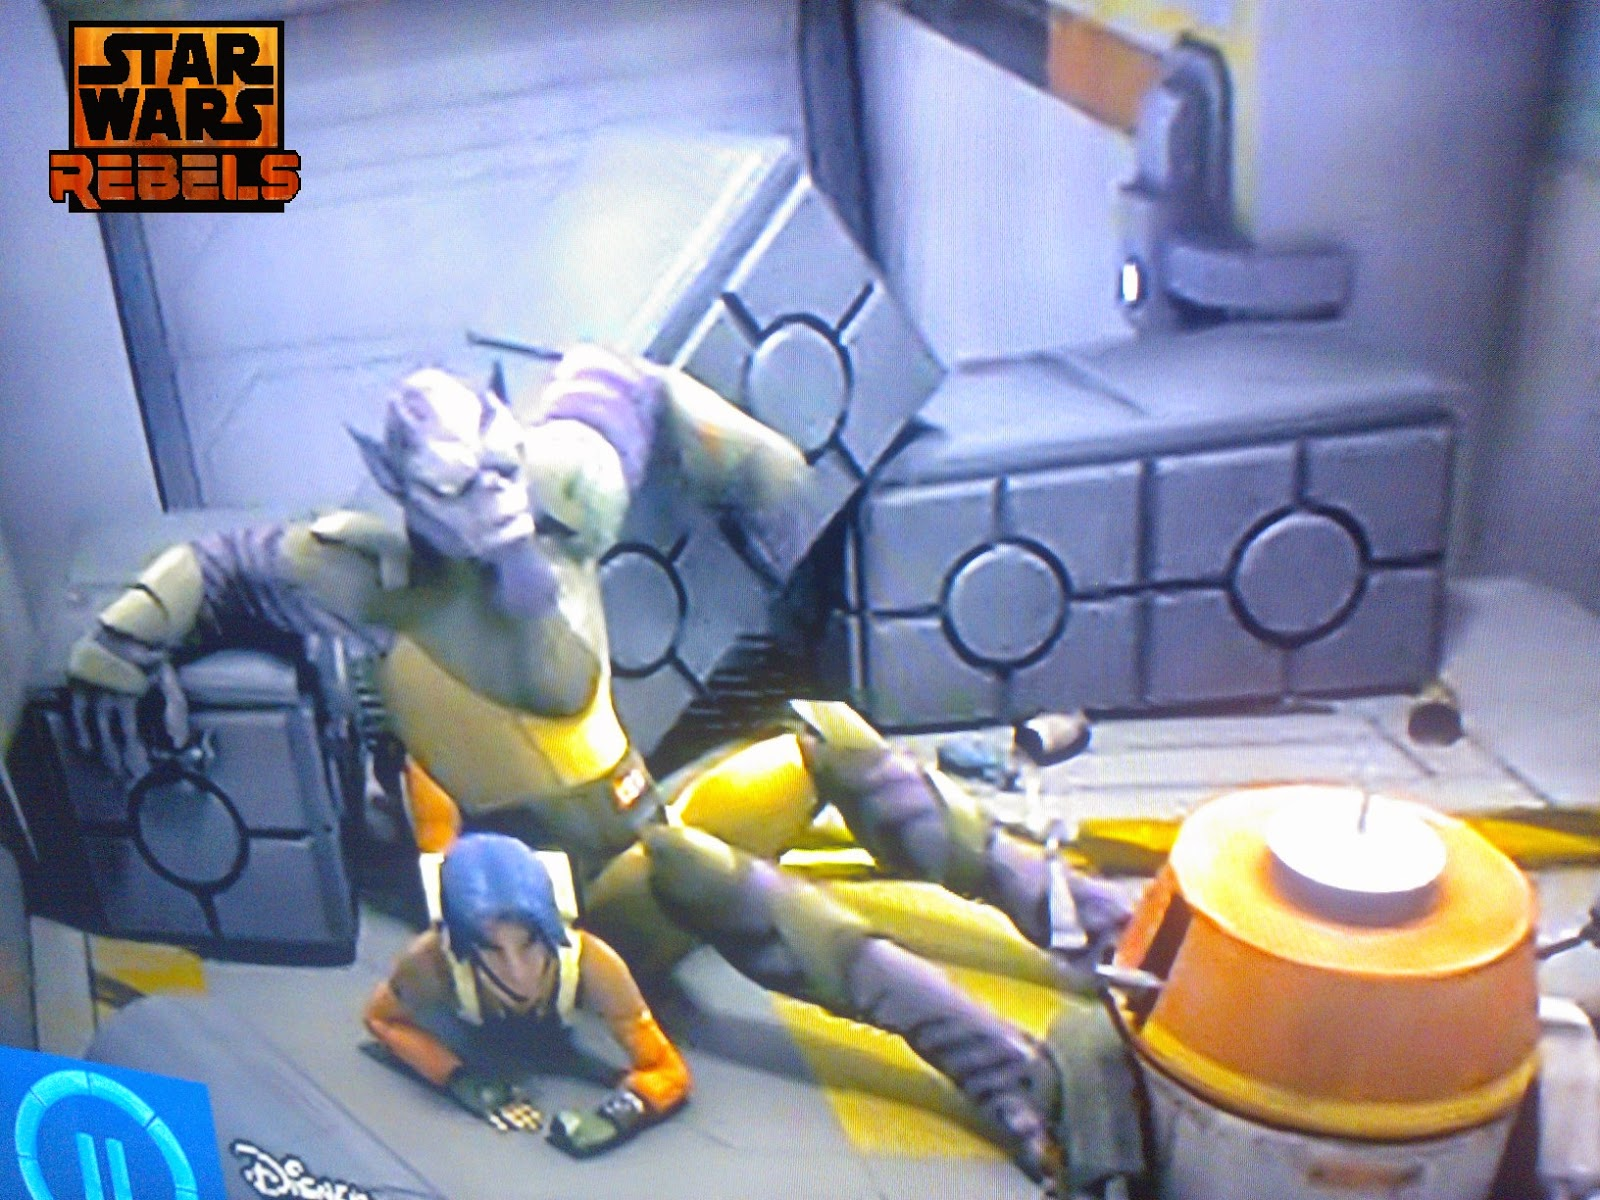 Star Wars Rebels - Storage boxs